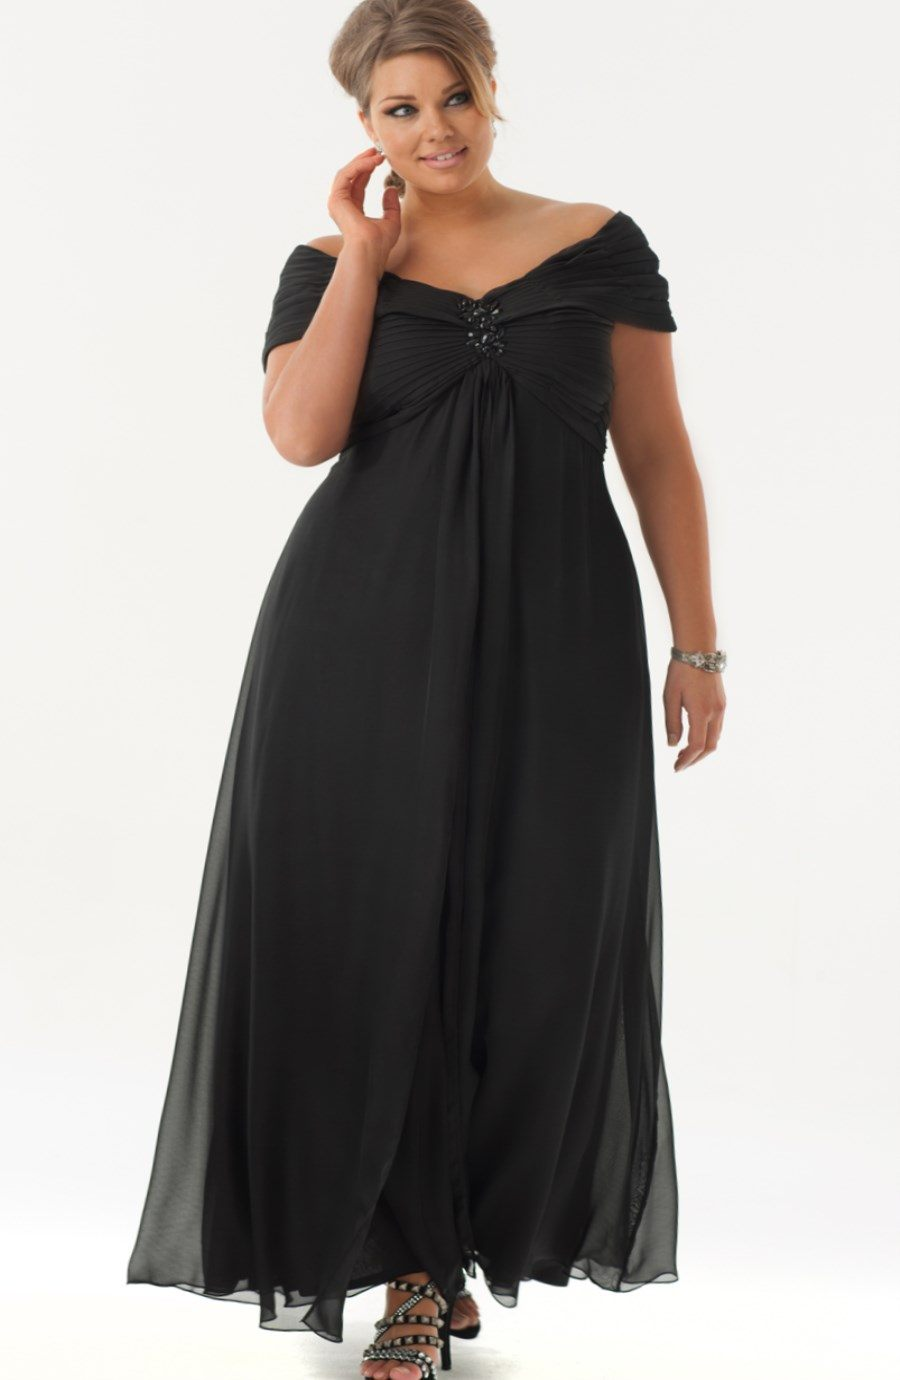 elegant plus size dresses for weddings photo - 1